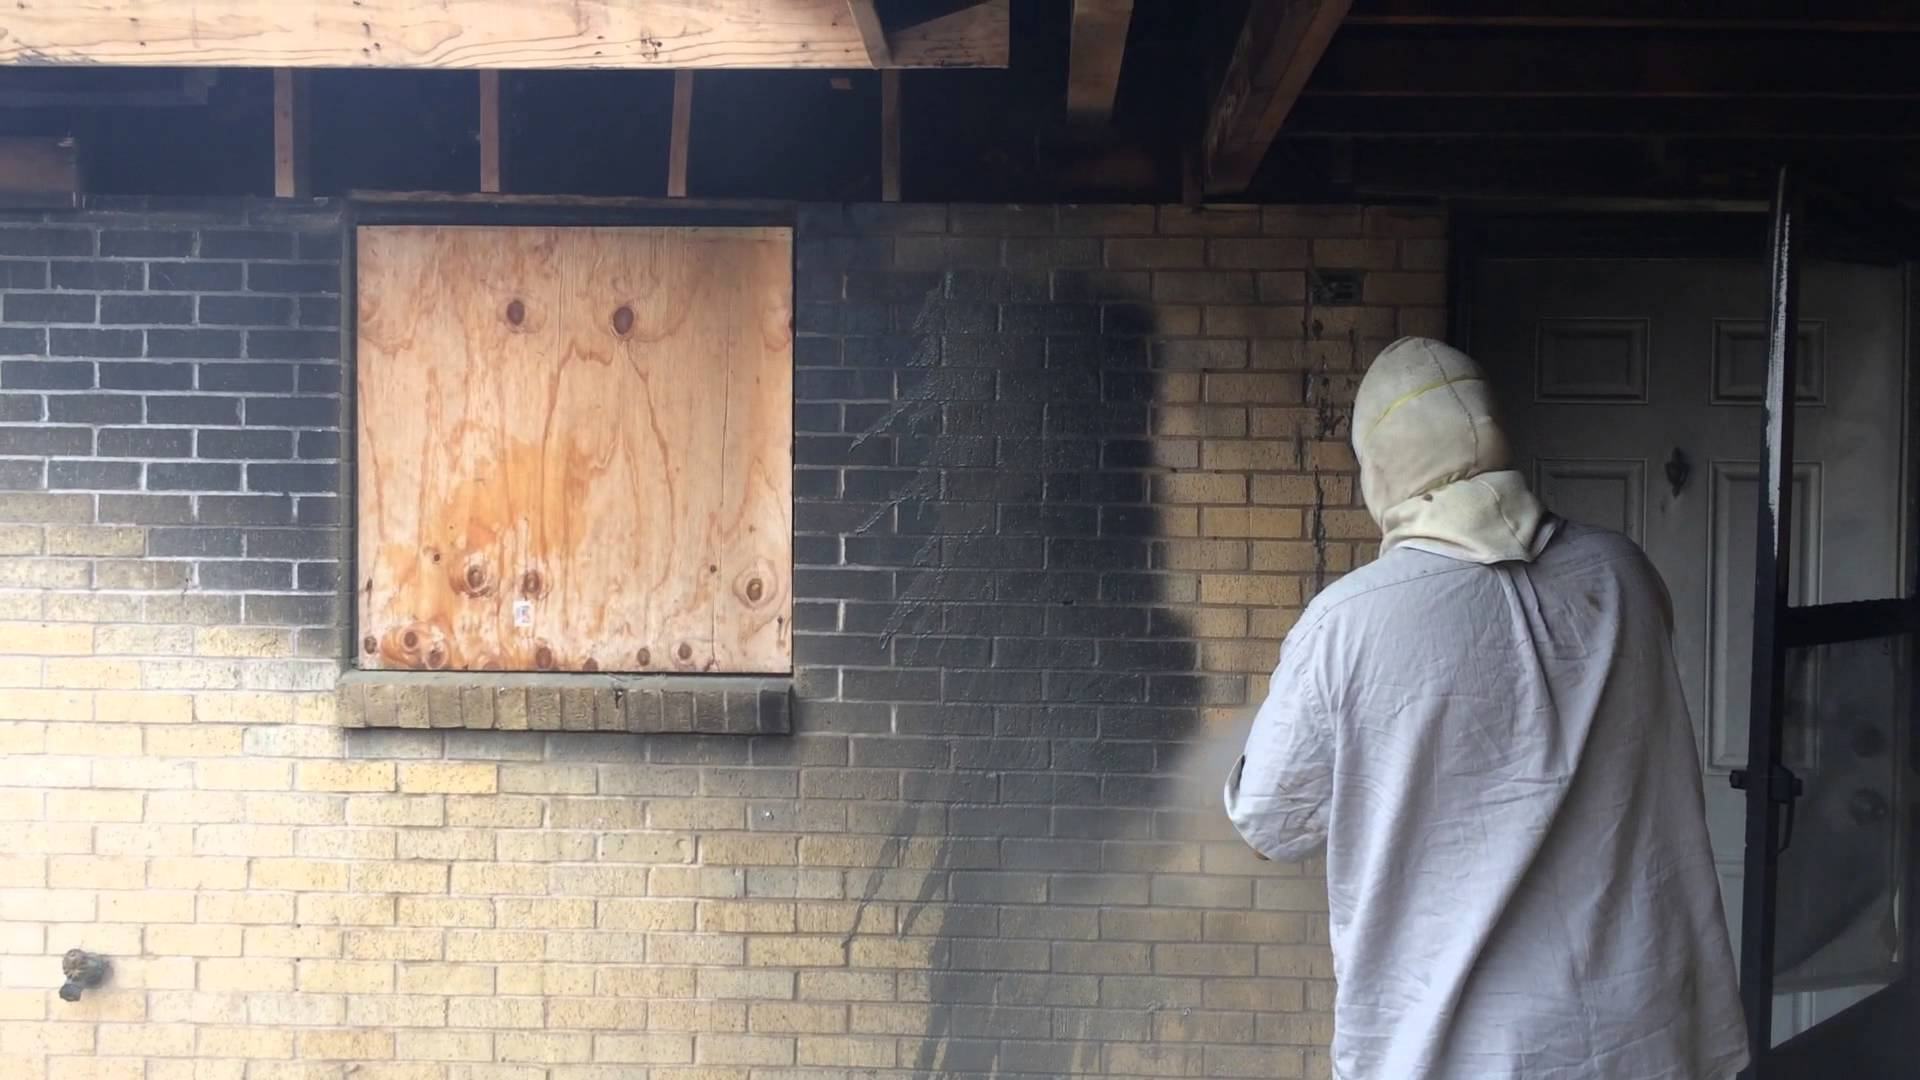 Dustless blasting - Cleaning fire damage from brick and wood